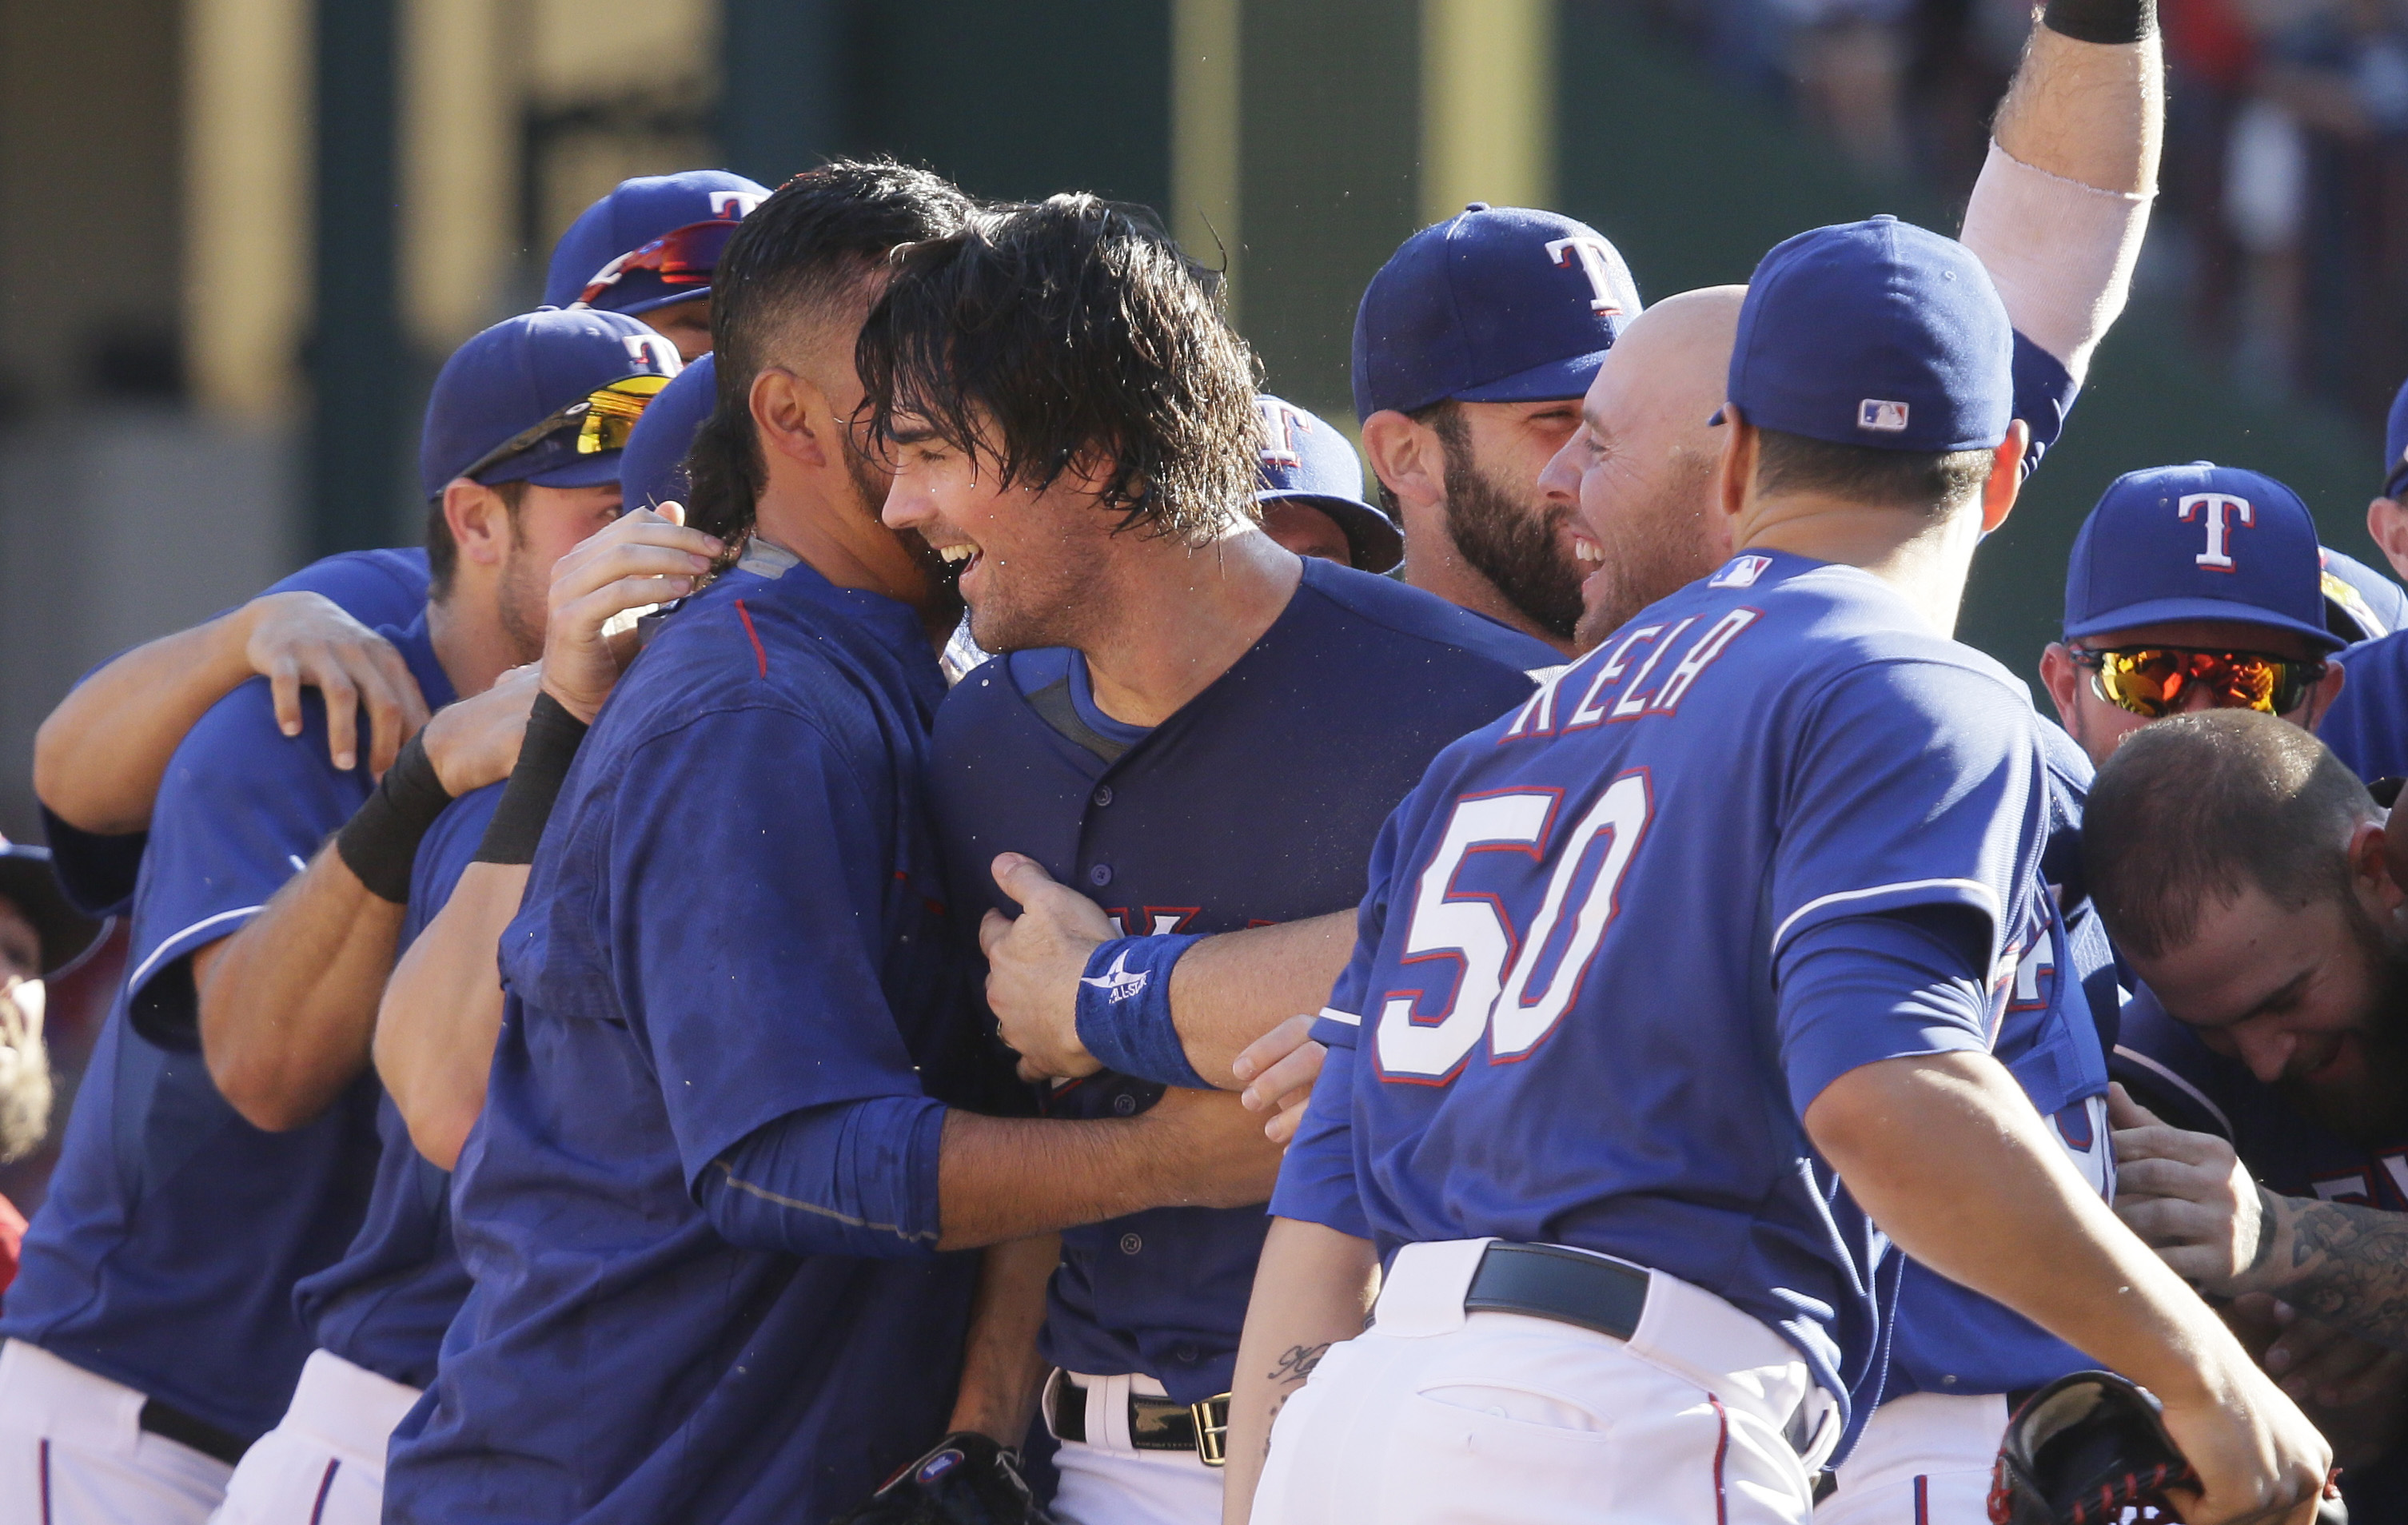 Texas Rangers starting pitcher Cole Hamels, center, is mobbed by his teammates after the final out of the baseball game against the Los Angeles Angels in Arlington, Texas, Sunday, Oct. 4, 2015. The Rangers clinched the AL West title on the last day of the